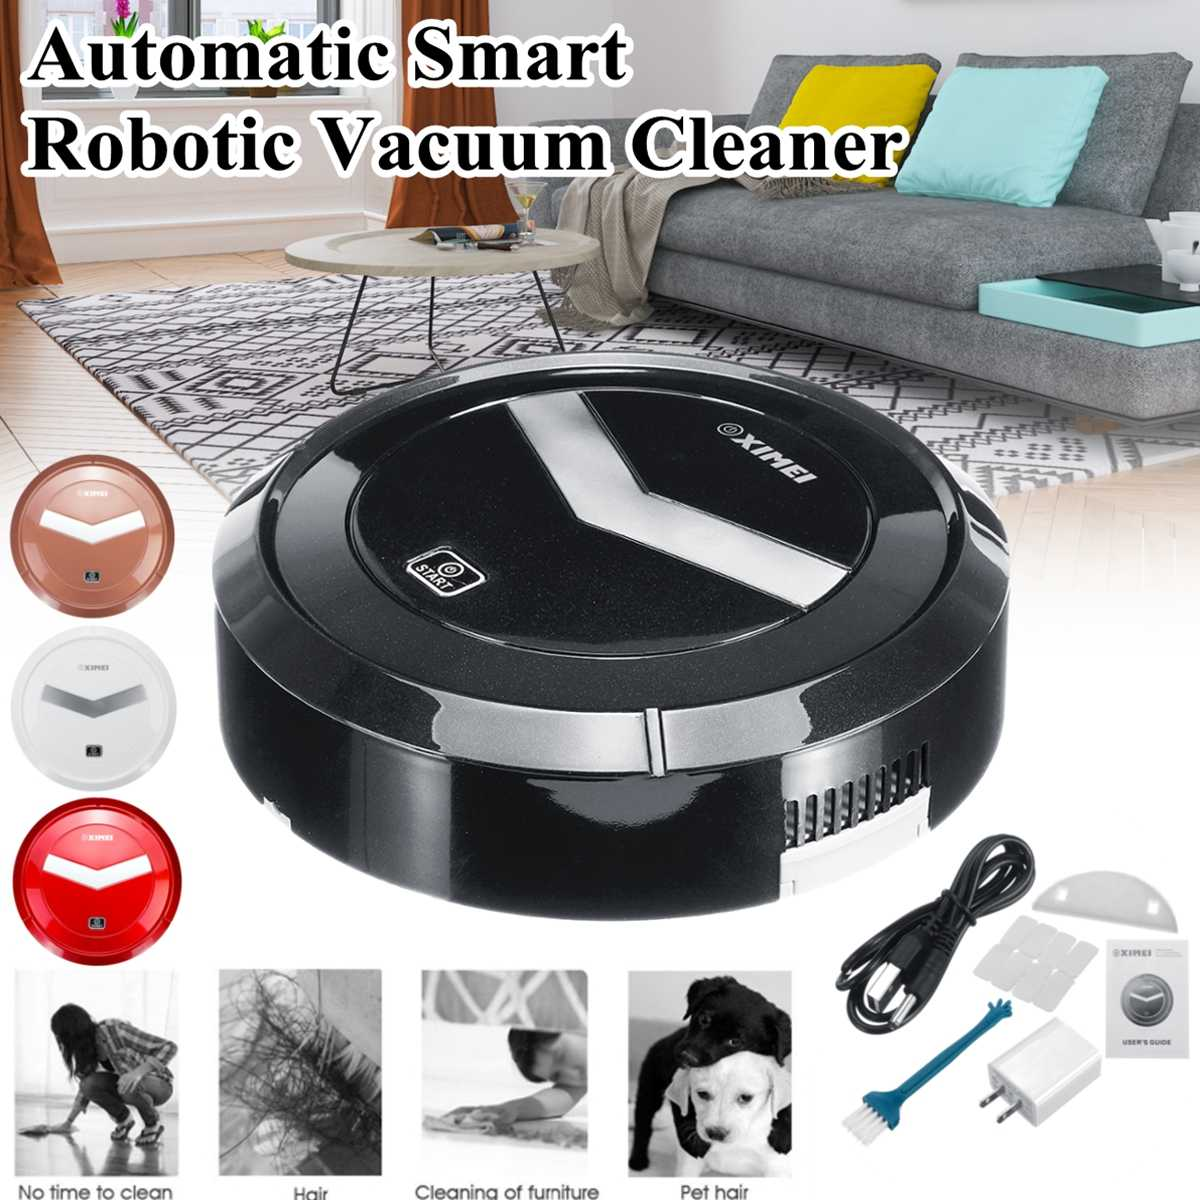 Smart Cleaning Robot Vacuum Cleaner Sweeping Machine Floor Dirt Dust Hair Mute Intelligent Automatic Induction For House Clean Household Appliances